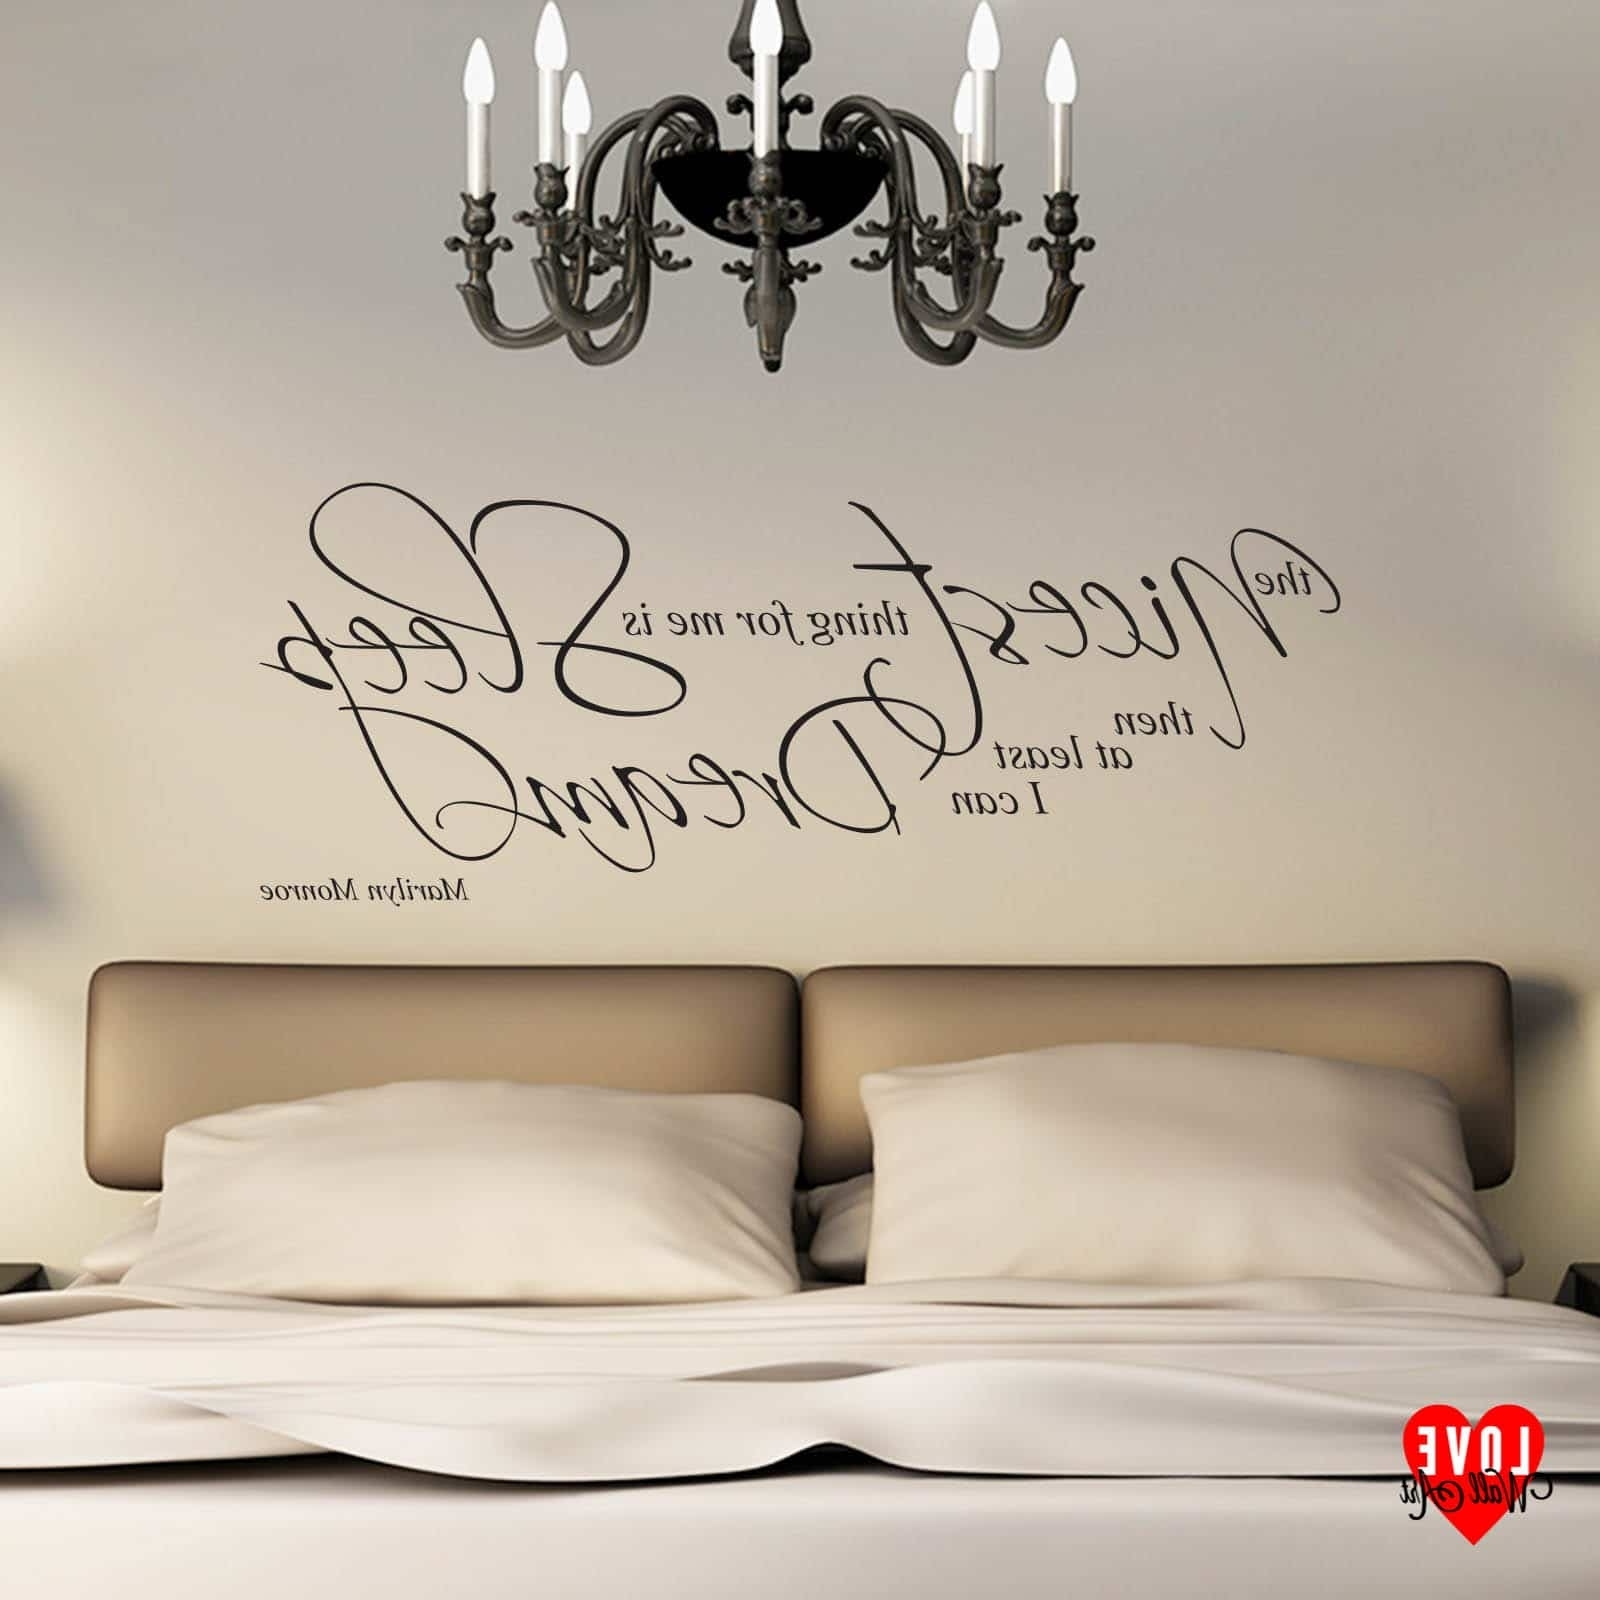 Marilyn Monroe Quote The Nicest Thing For Me Is Sleep Wall Art Intended For Widely Used Marilyn Monroe Wall Art Quotes (View 4 of 15)